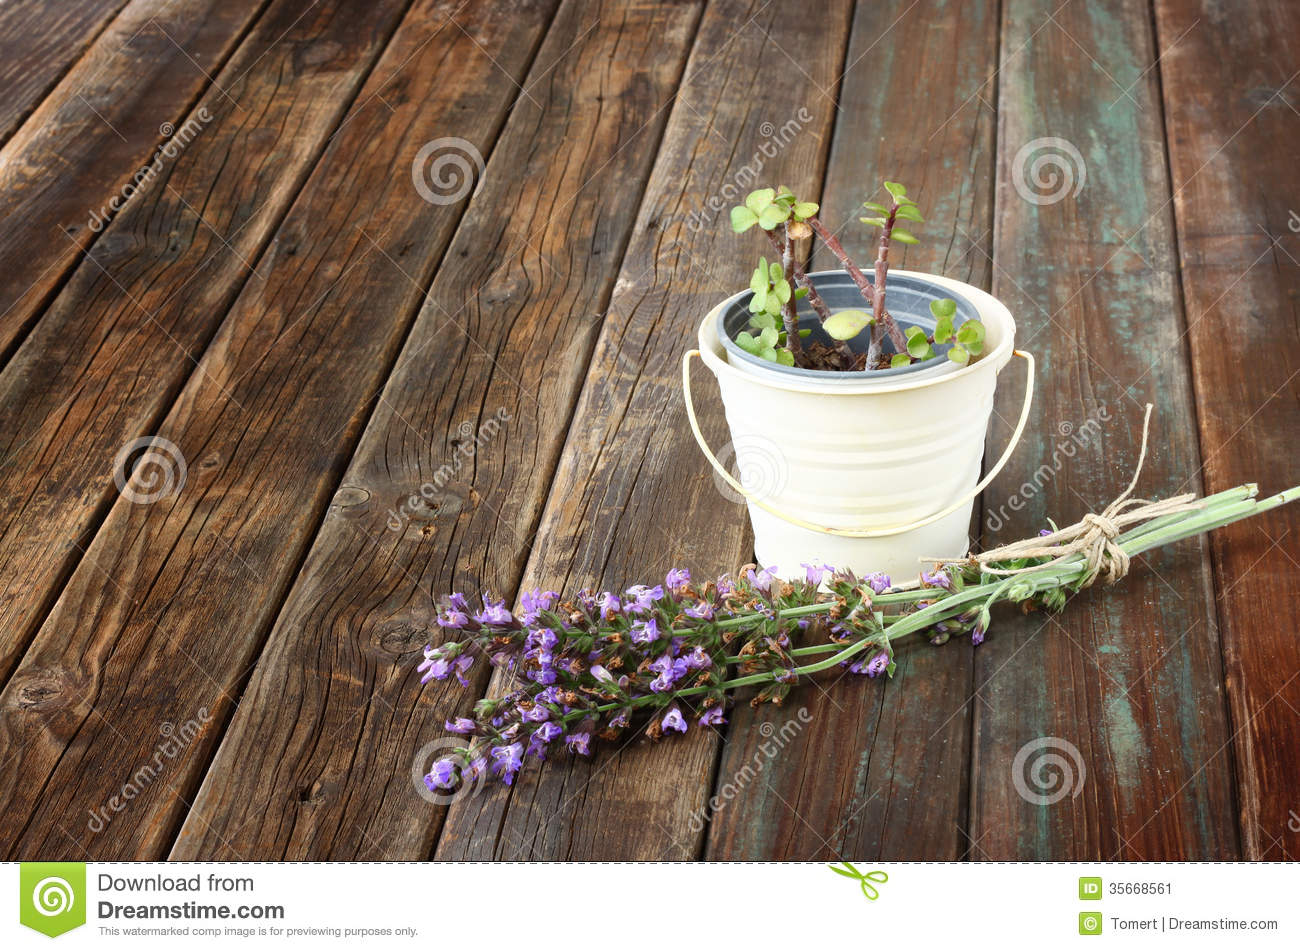 Rosemary and geranium plant on wooden table